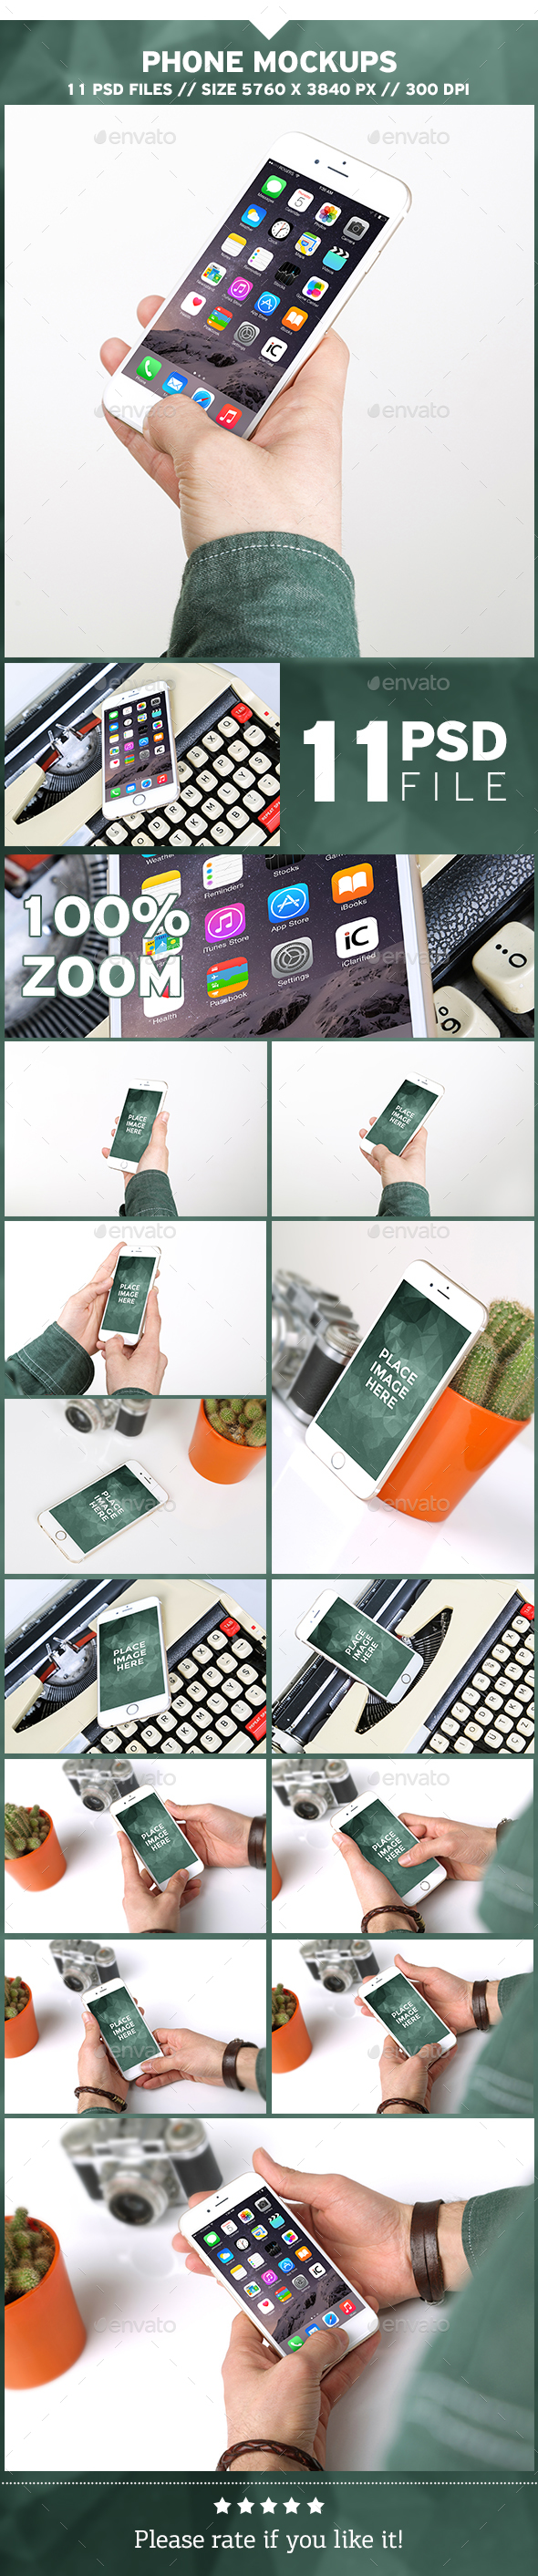 Phone Mockups - Mobile Displays